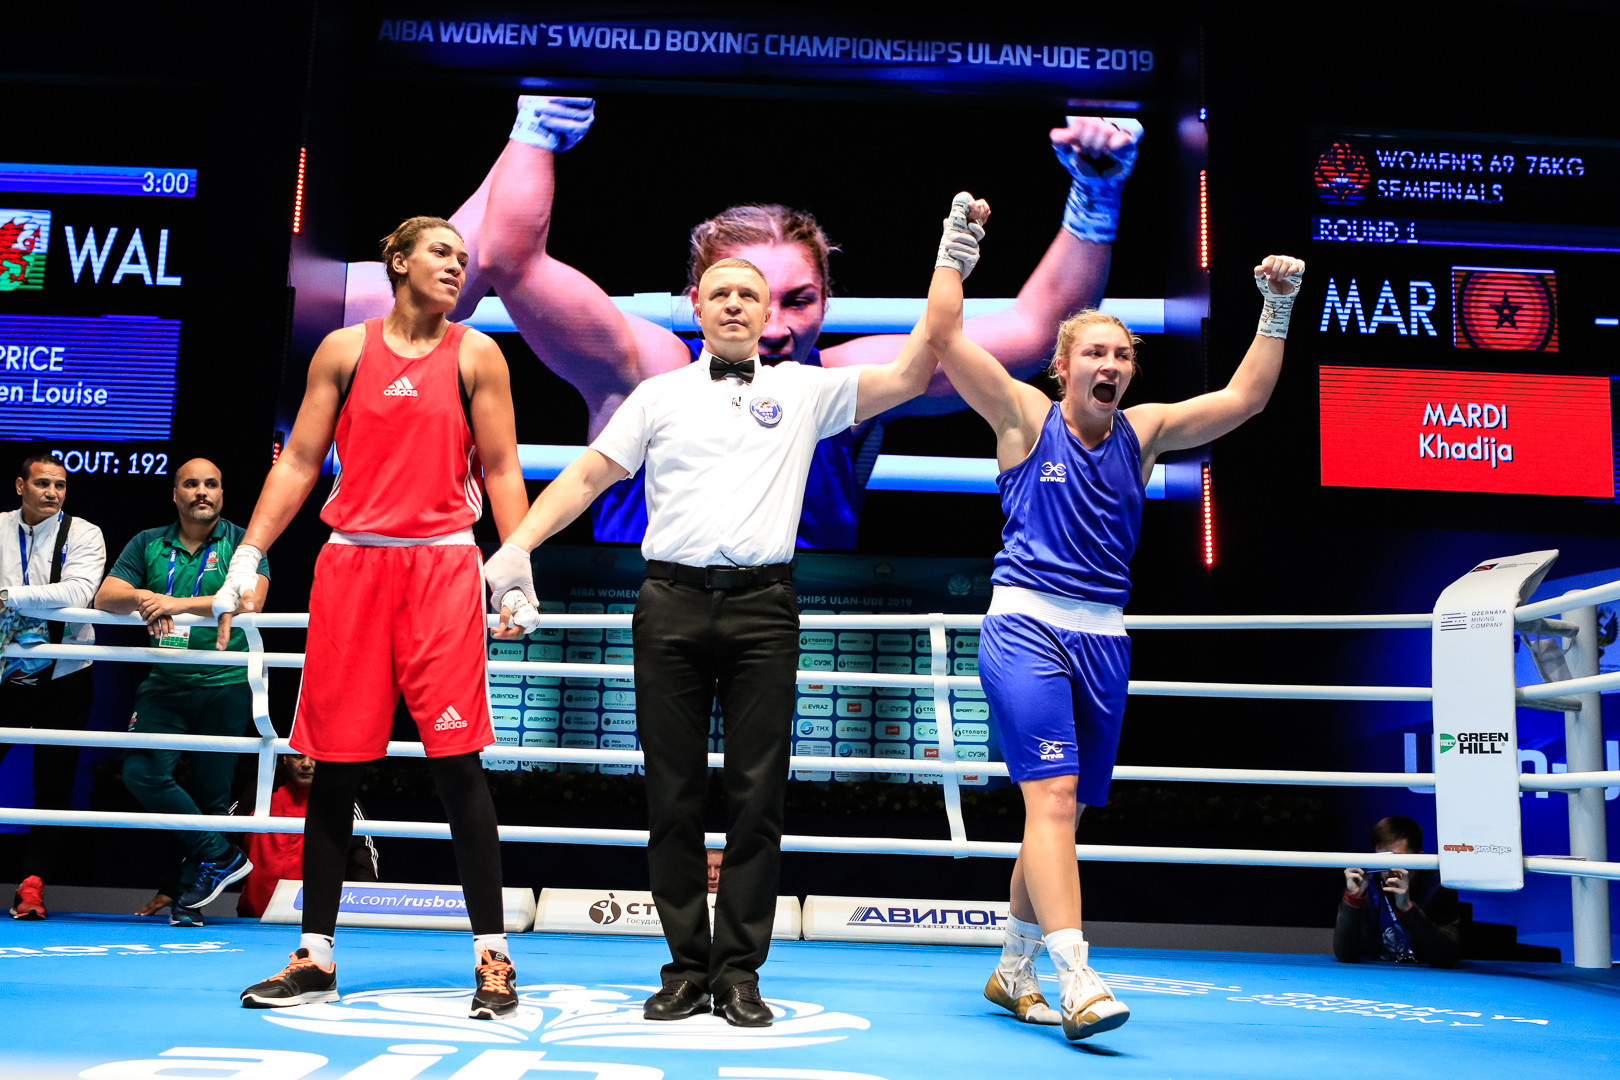 Her opponent will be Welsh Commonwealth champion Lauren Price, a unanimous winner over Khadija Mardi of Morocco ©AIBA